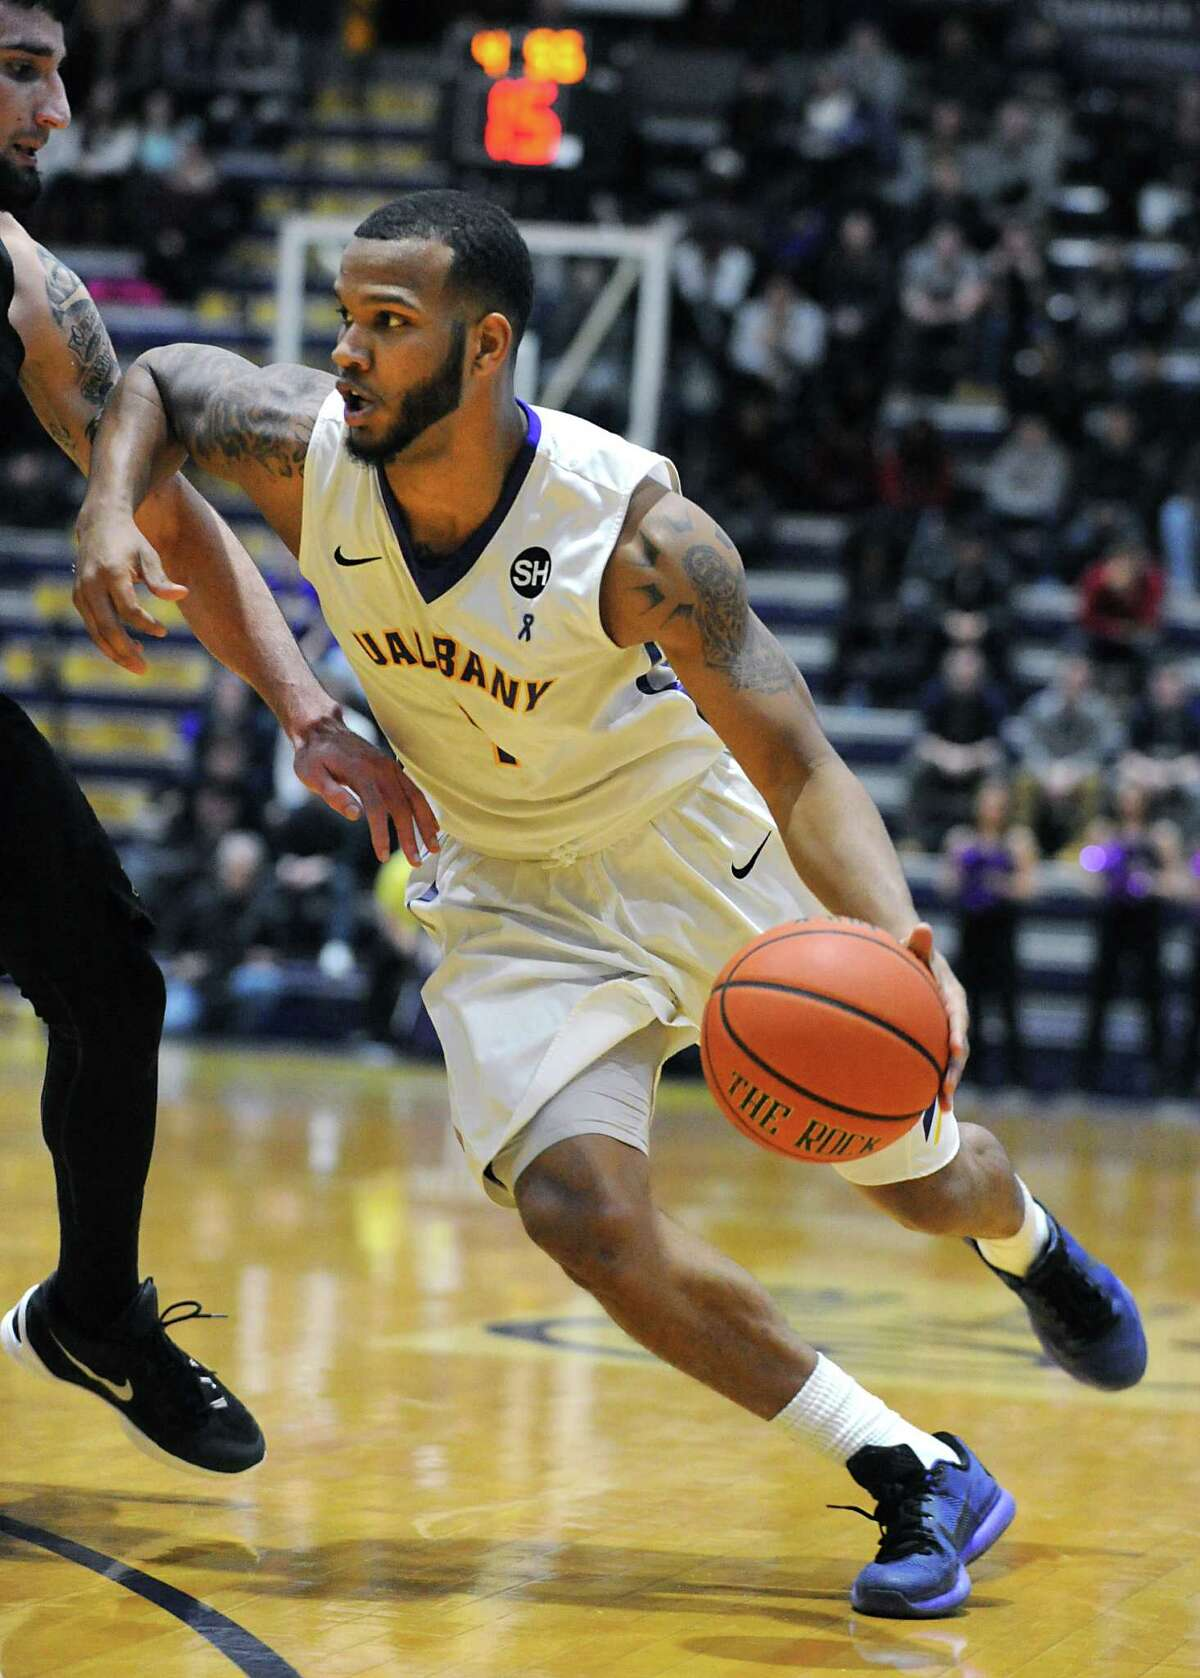 UAlbany's Marlon Beck makes a move to the basket during an America East Conference basketball game against Binghamton at the SEFCU Arena on Monday, Jan. 18, 2016 in Albany, N.Y. (Lori Van Buren / Times Union)